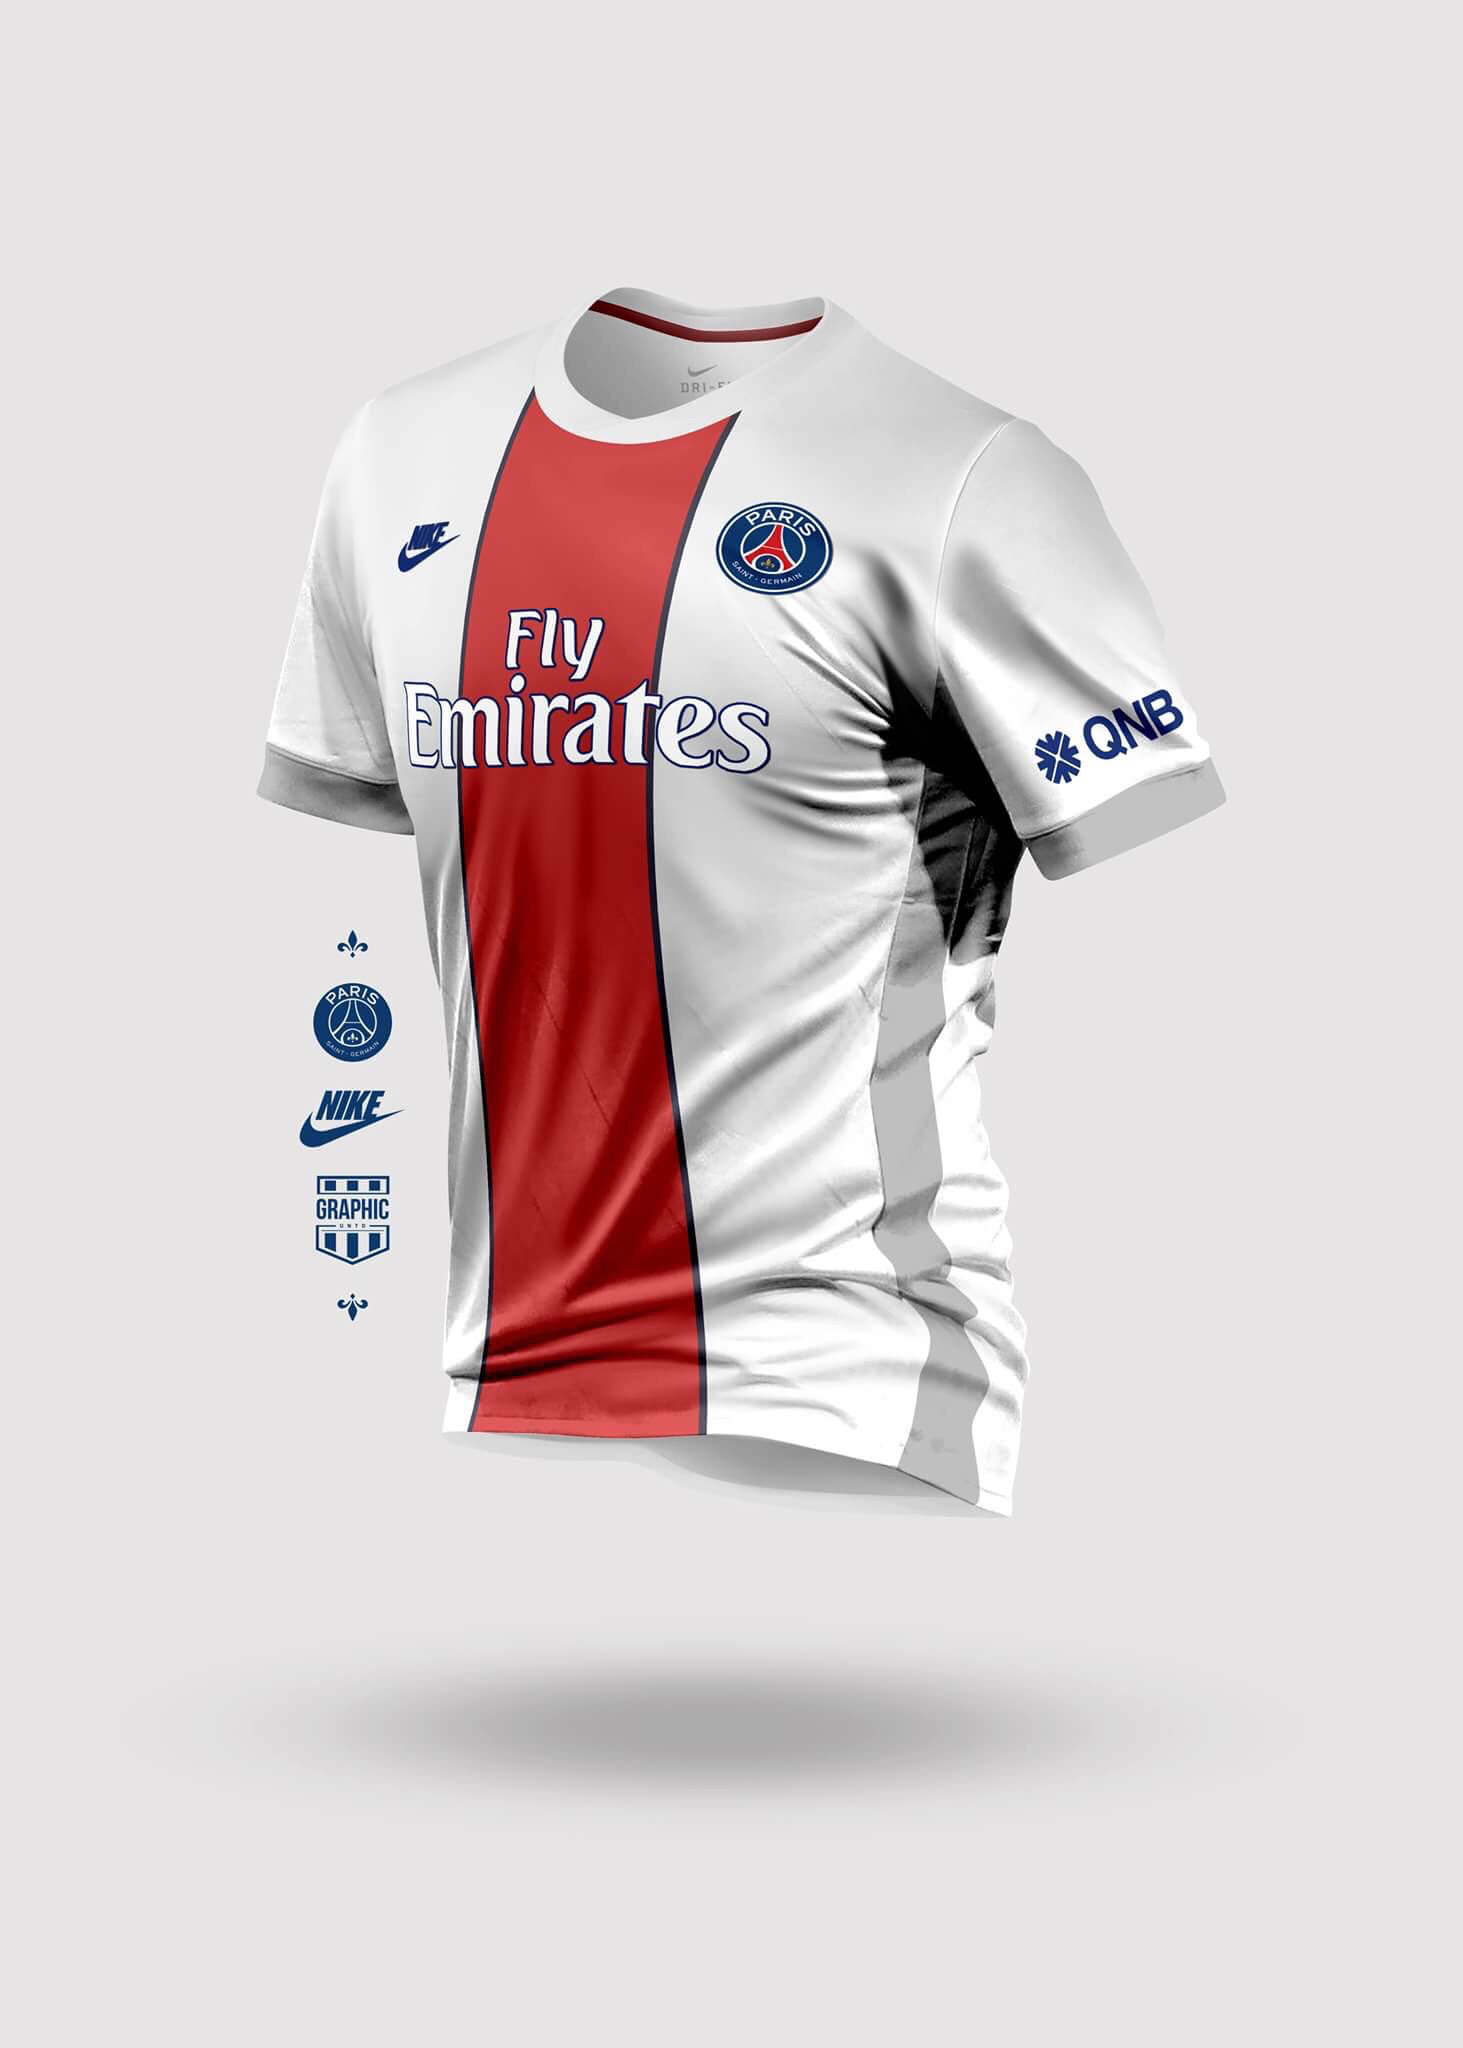 7e461c0fc467d Pin by Jordan Davis on PARIS SAINT-GERMAIN